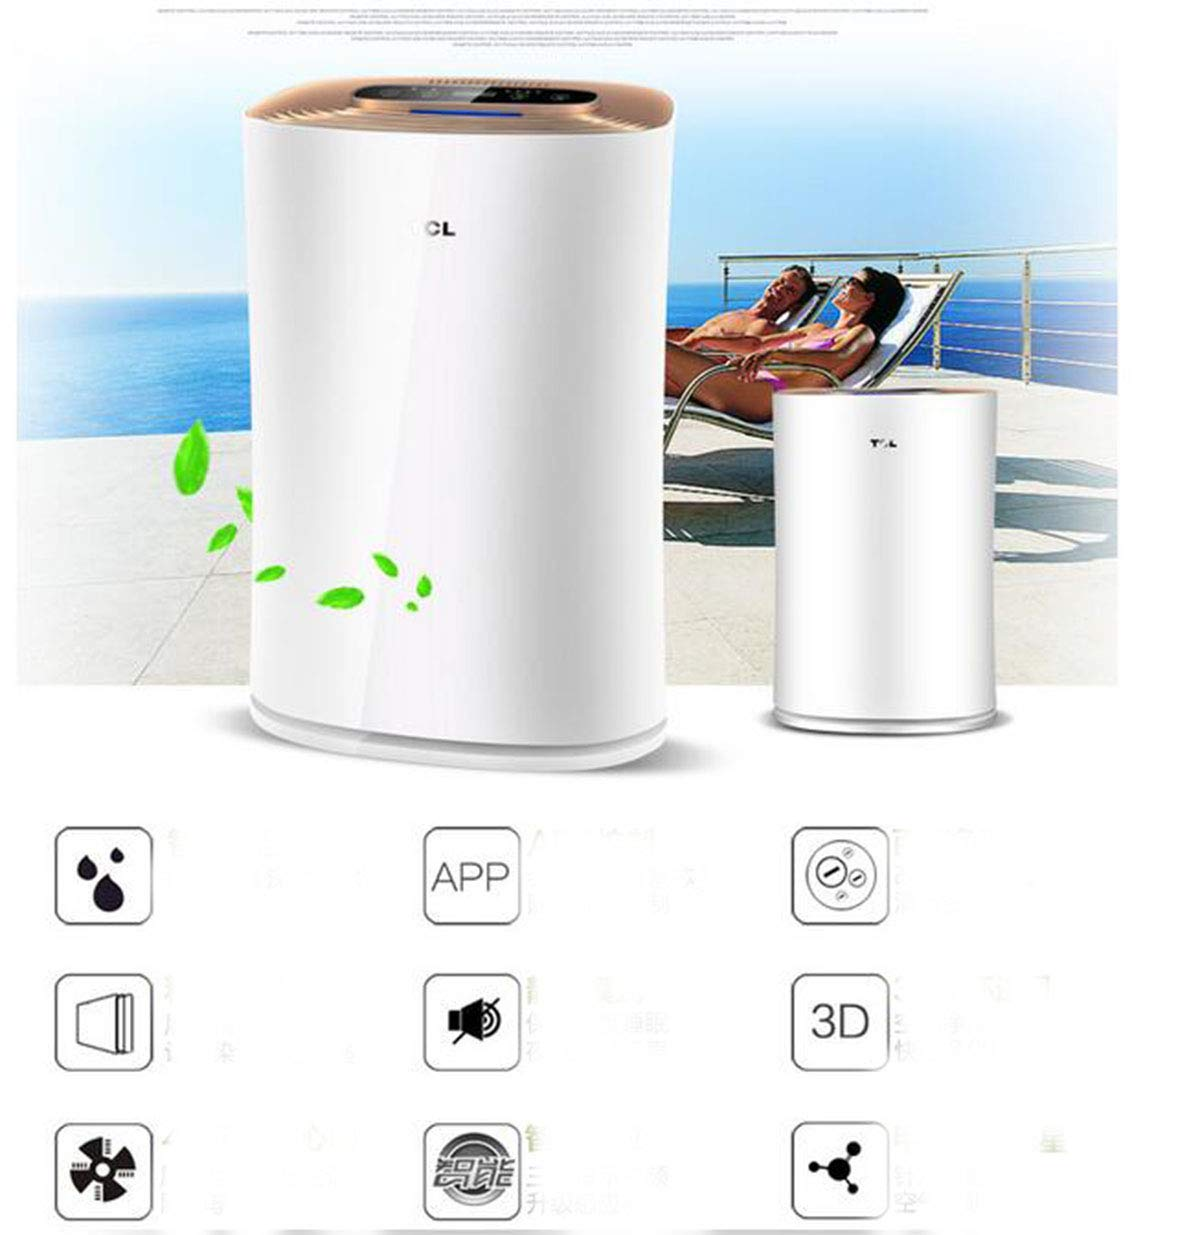 61awsWW3wYL - TCLTKJ300F-S1 Intelligent Purifier Household In Addition To Formaldehyde PM2.5 Negative Ion Humidifier